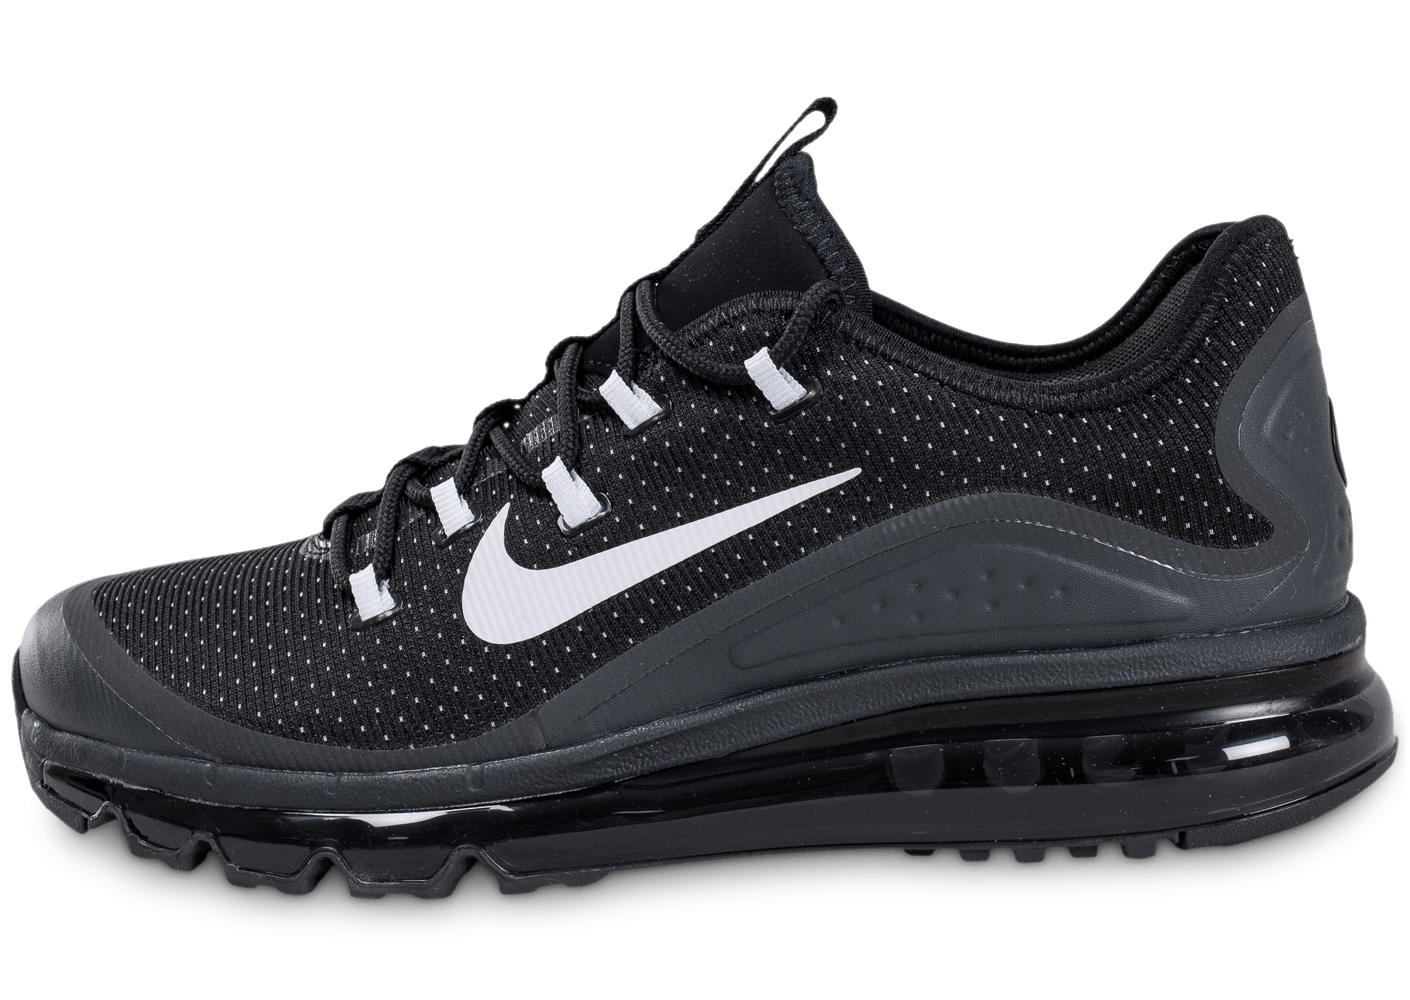 nike air max more noire chaussures homme chausport. Black Bedroom Furniture Sets. Home Design Ideas